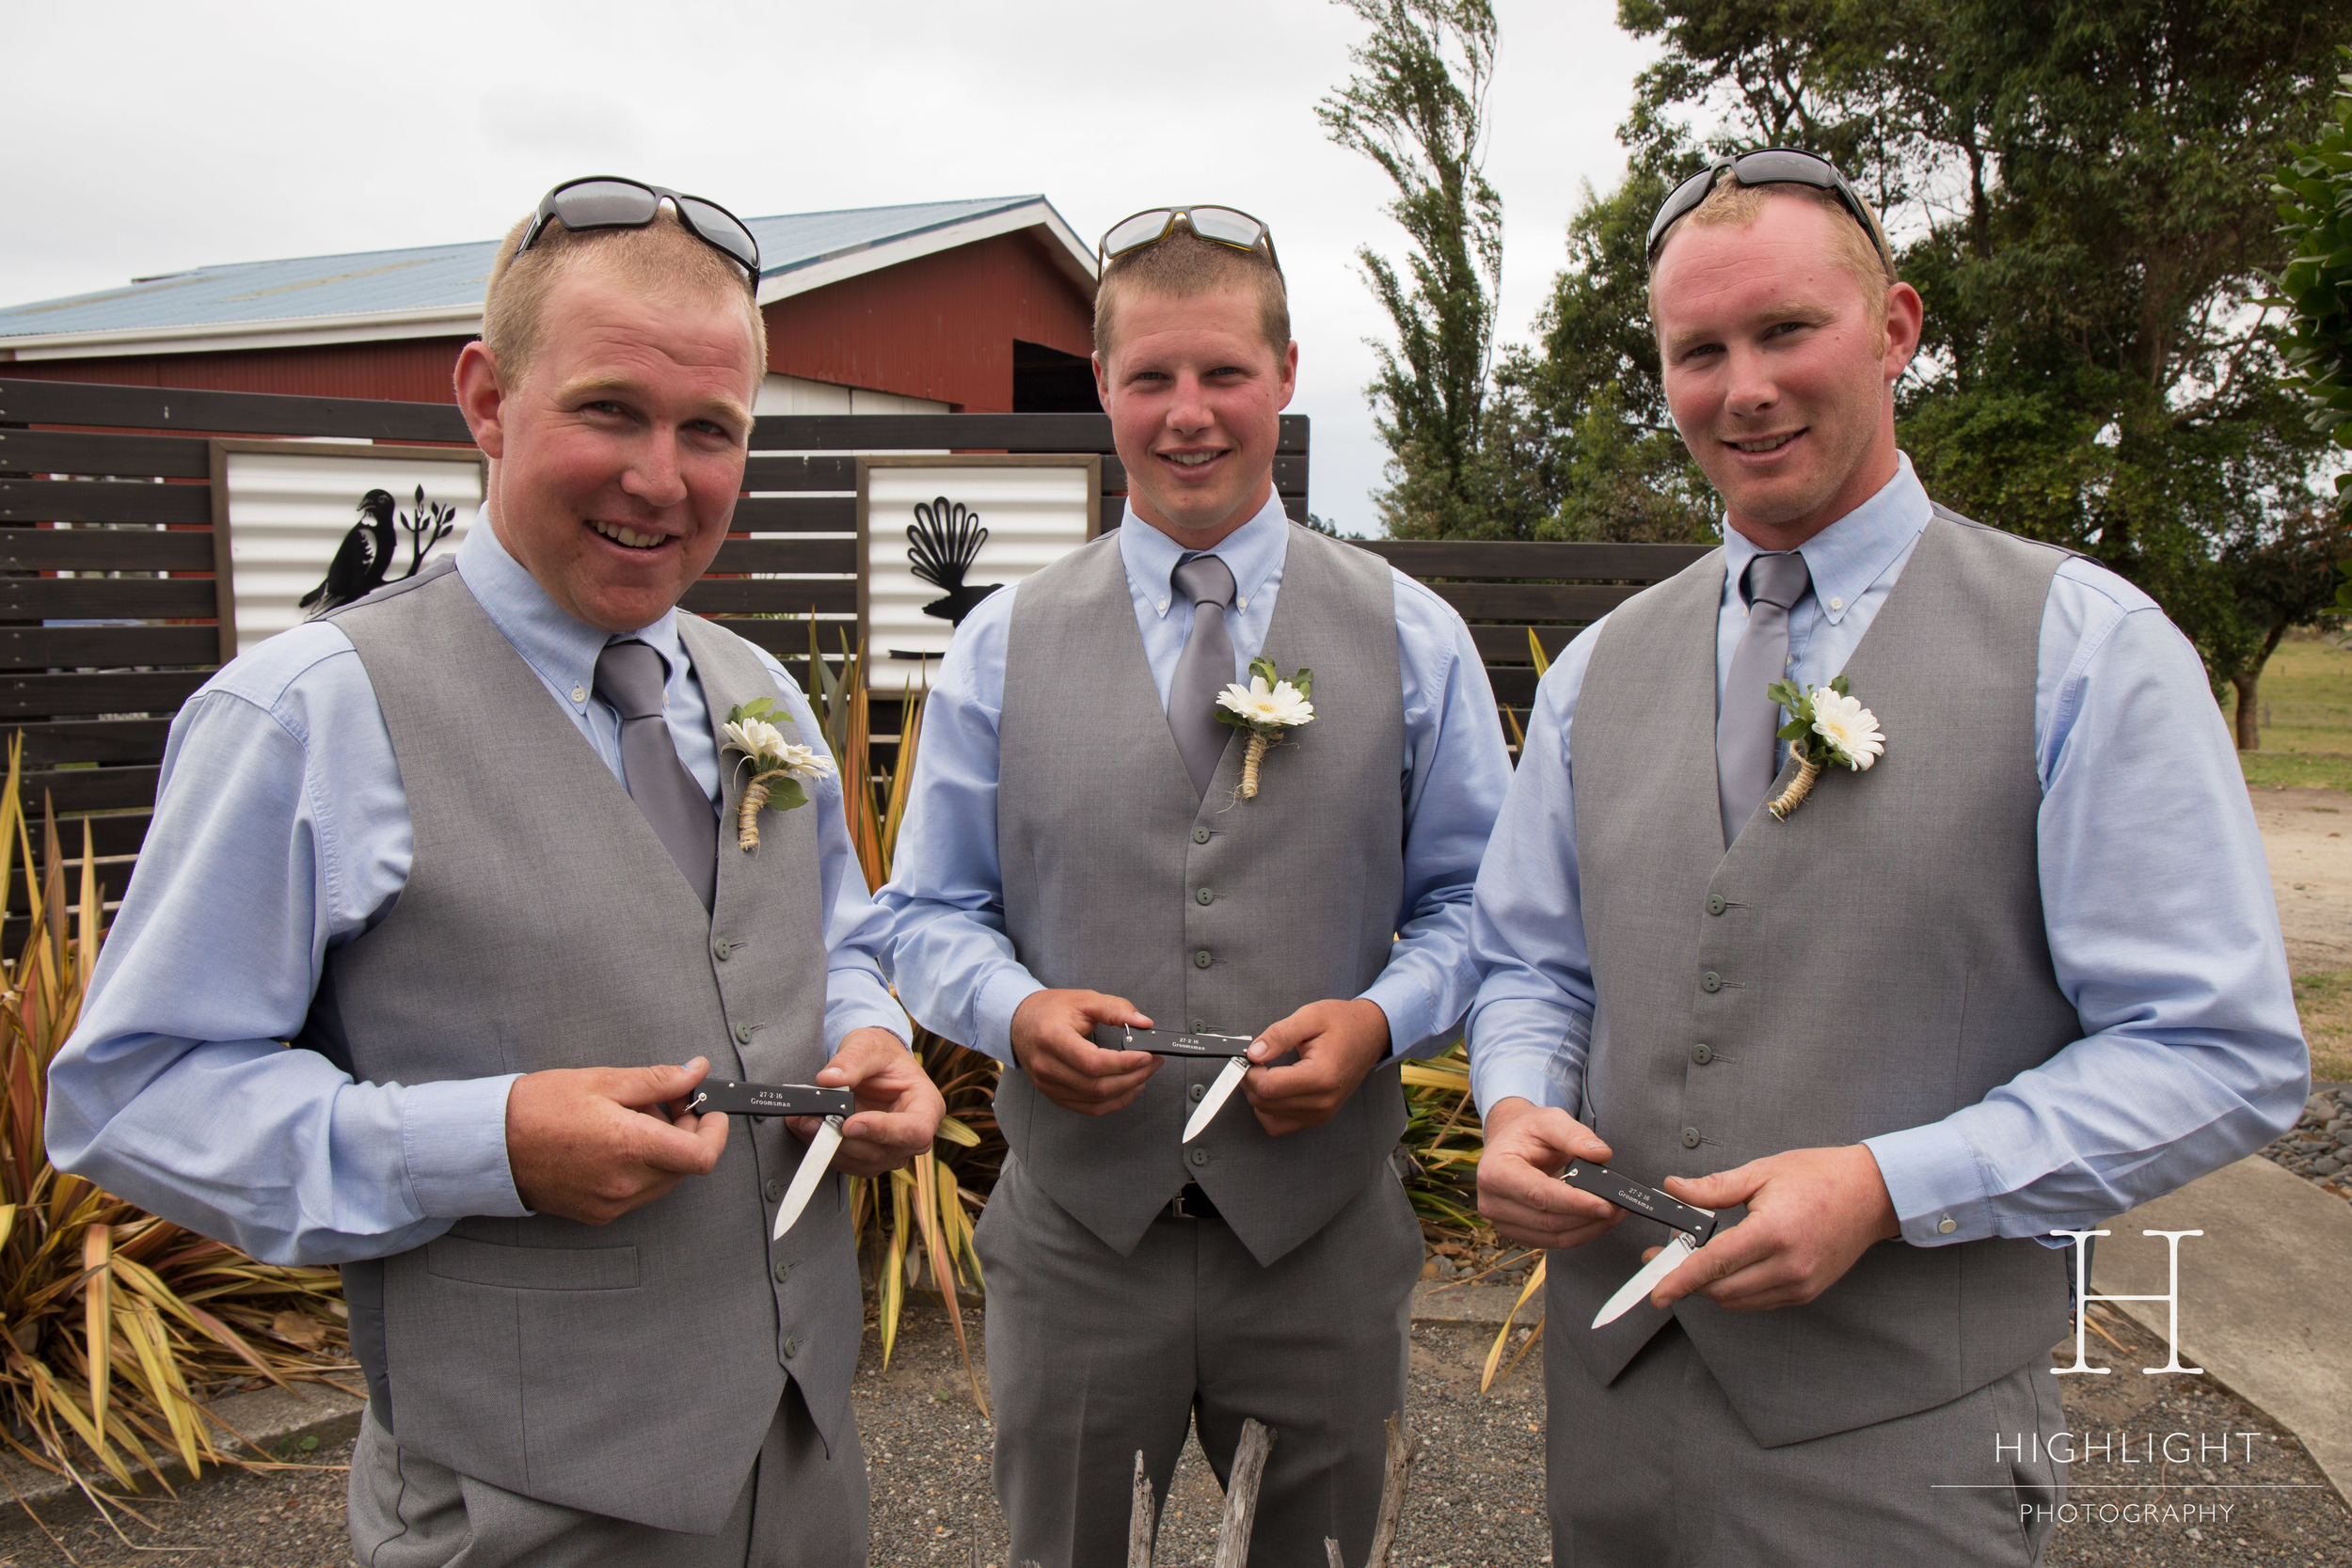 highlight_photography_wedding_new_zealand_cormacgroomsmen.jpg